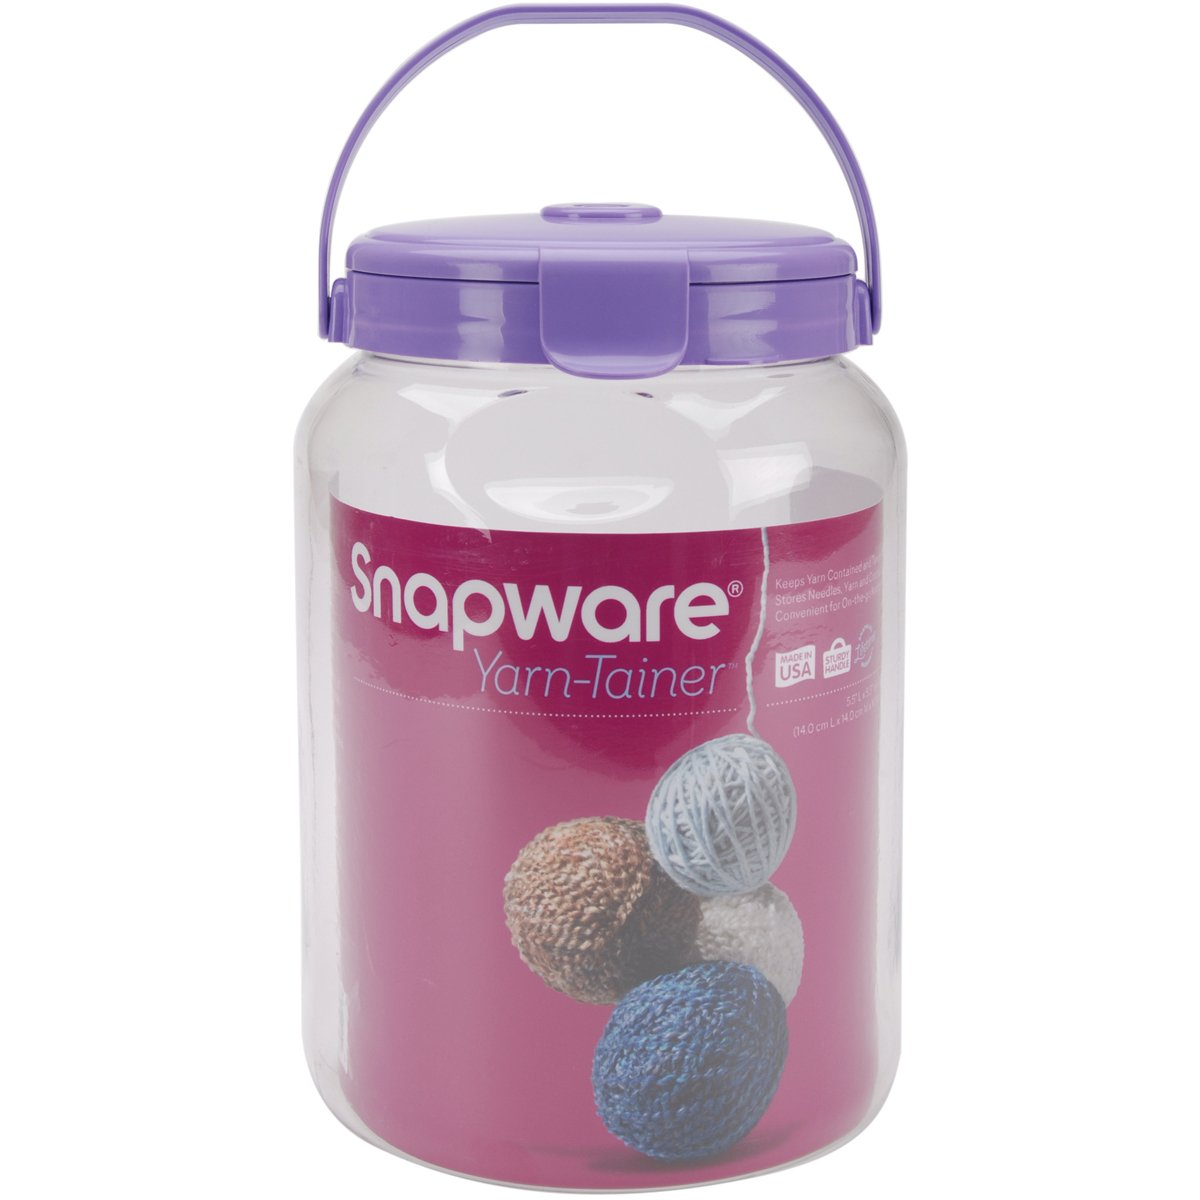 Snapware Yarn Tainer Small-8-Inchx5.5-Inch Clear 1098520